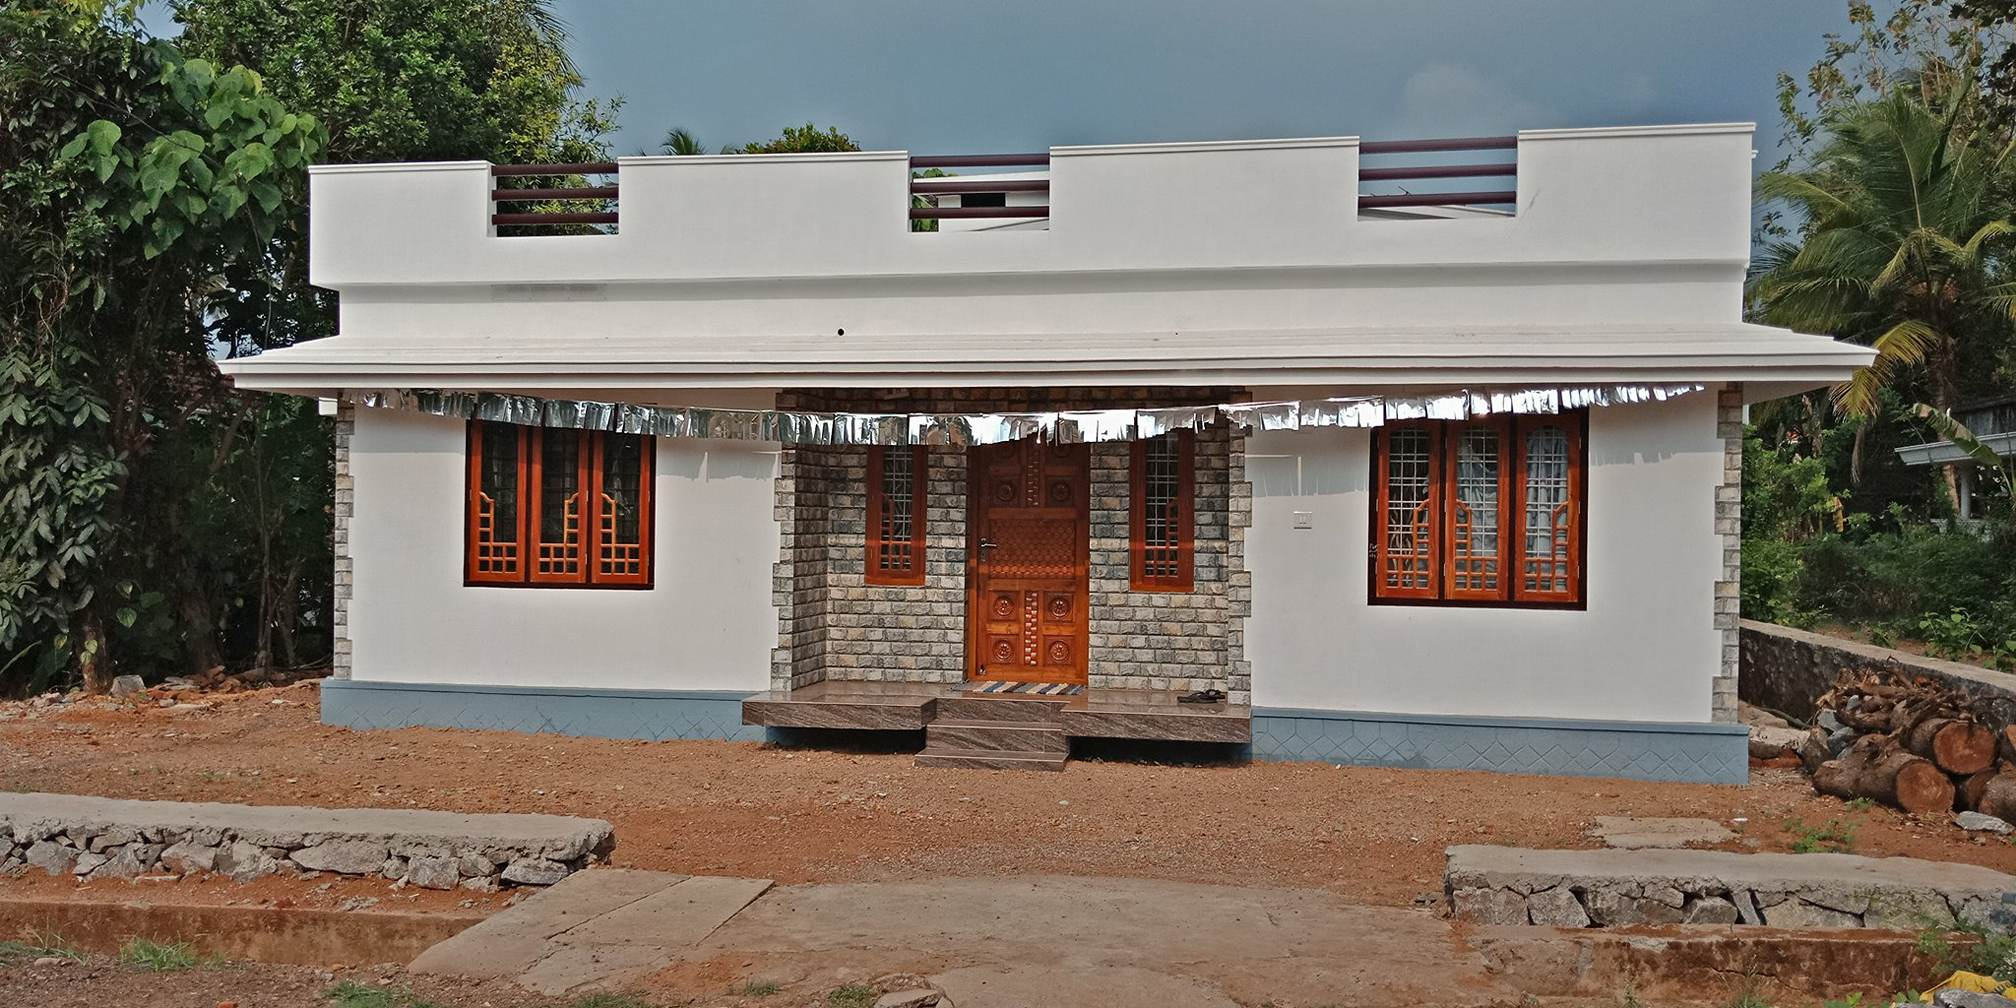 Low Cost 3 Bedroom Single Floor At: 960 Square Feet 3 Bedroom Single Floor Low Budget Home